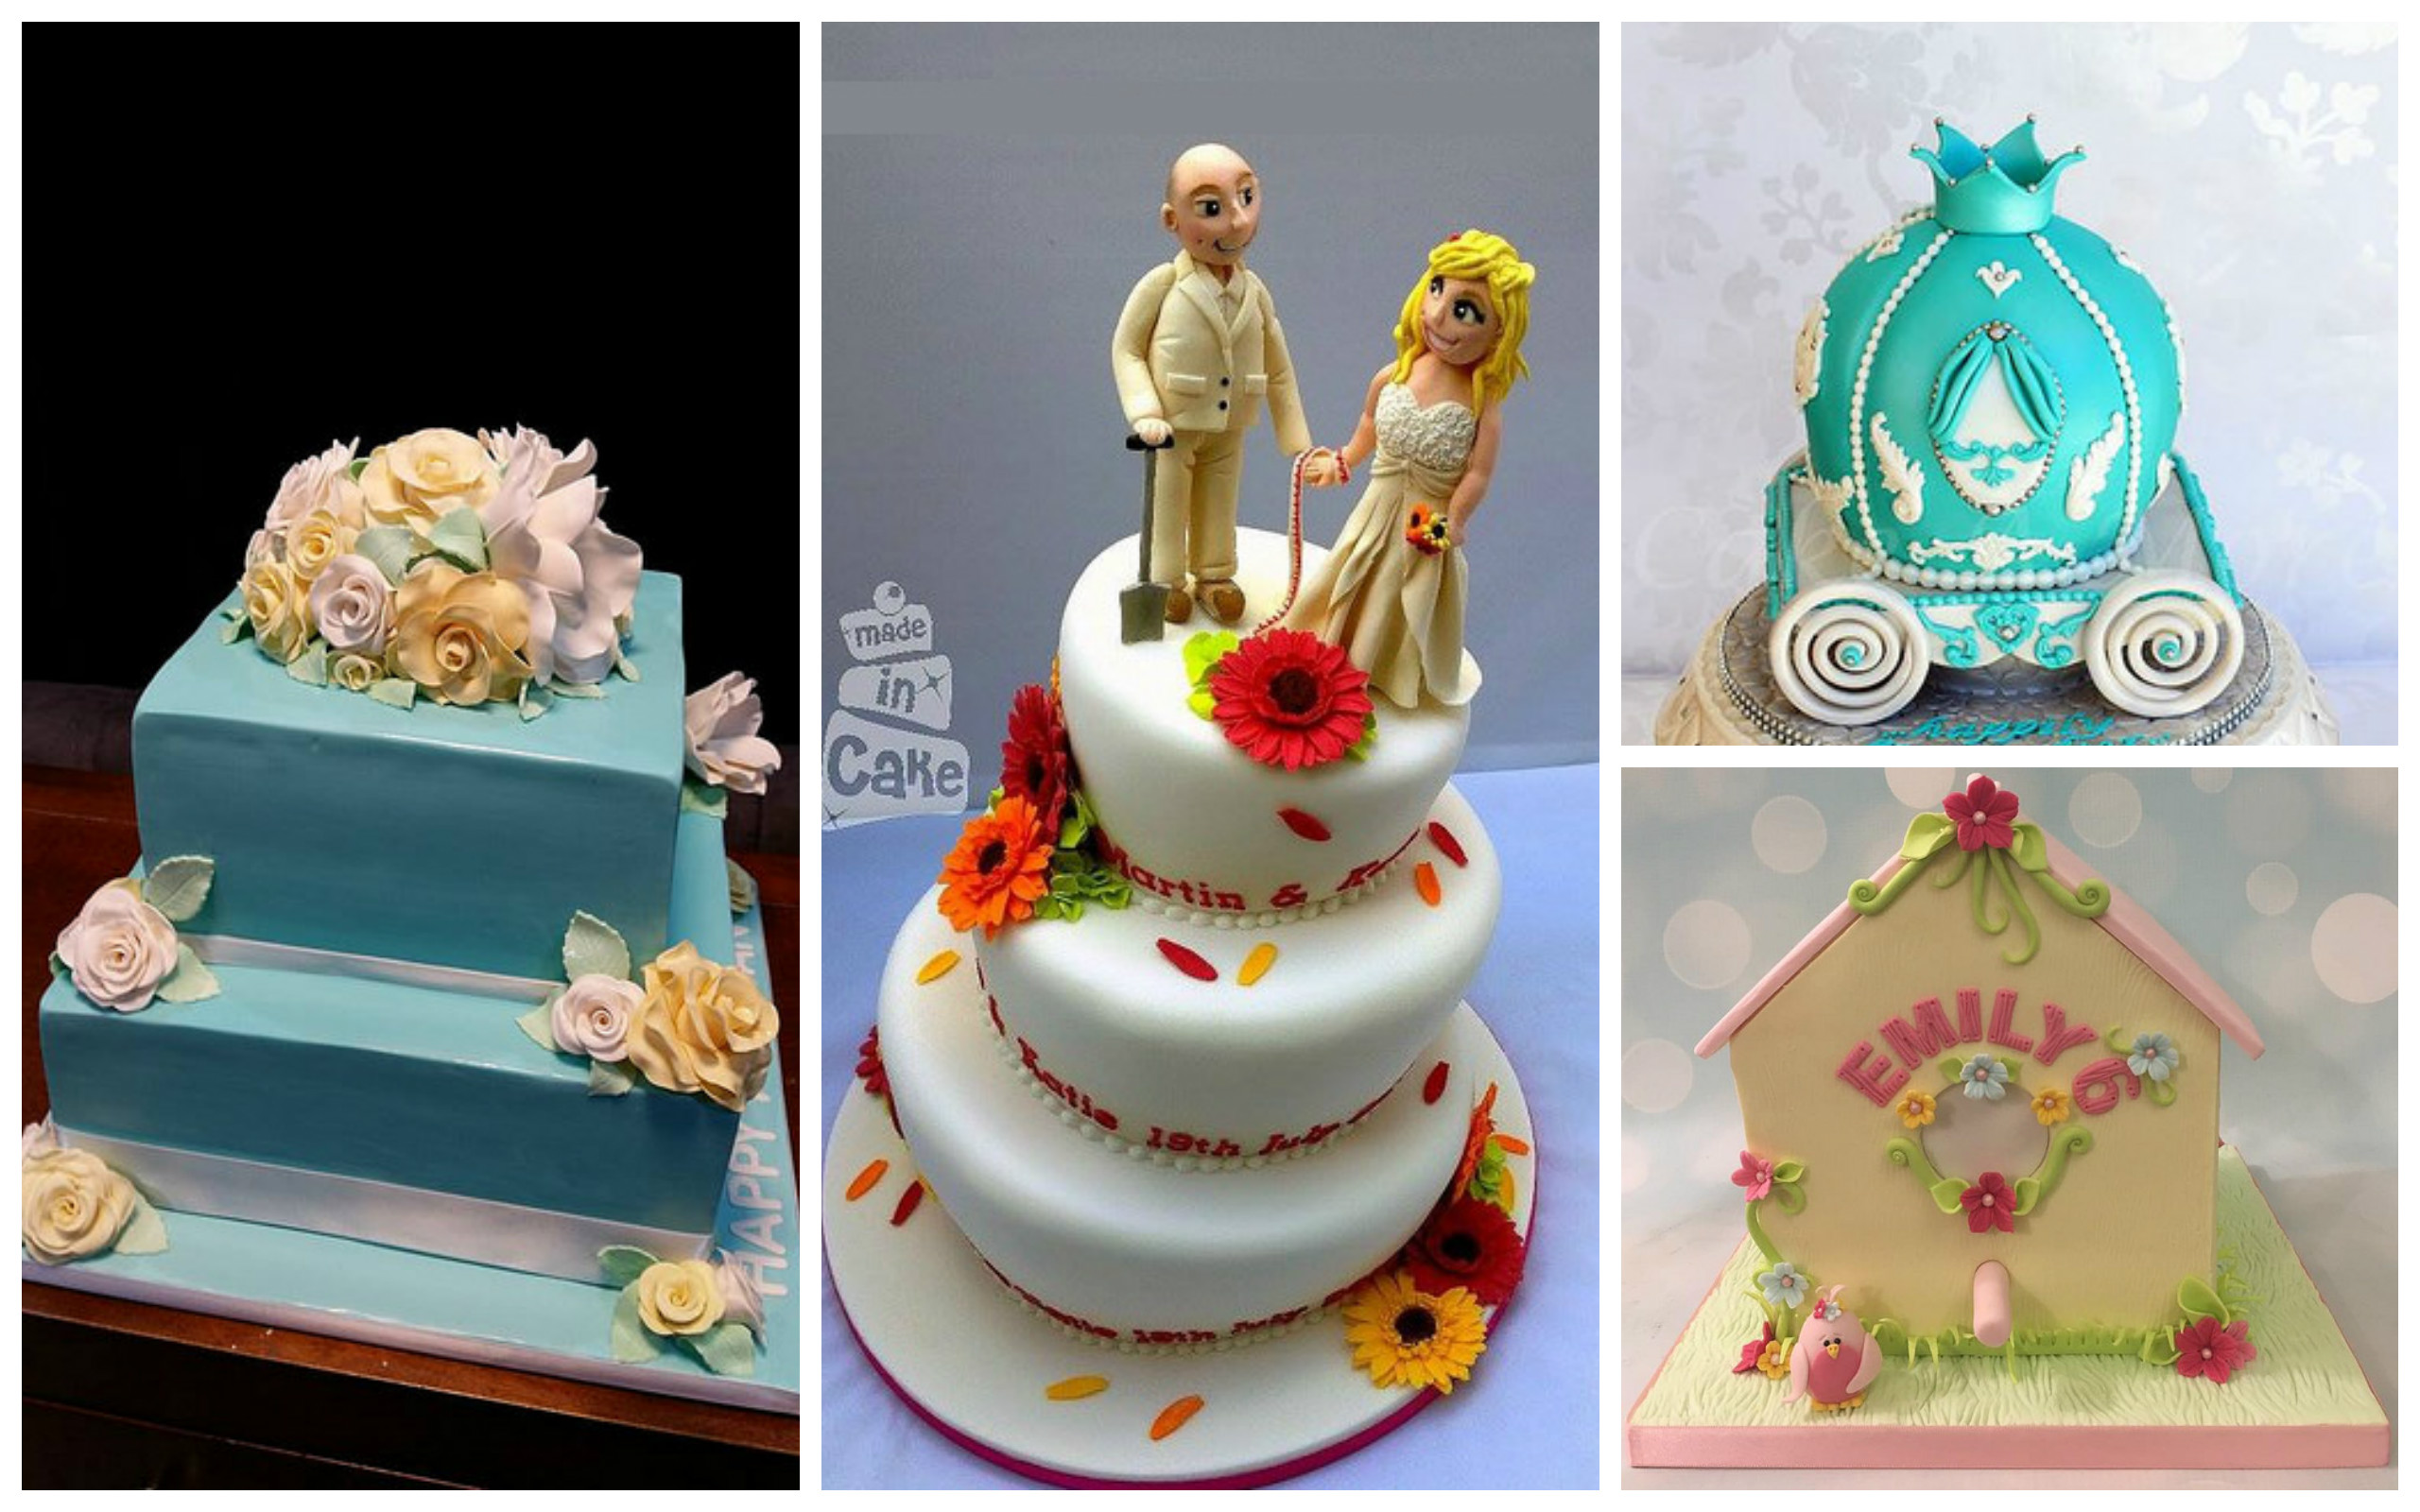 Cake Design Competition : Competition: World s Super Awesome Cake Artist - Page 3 of 13